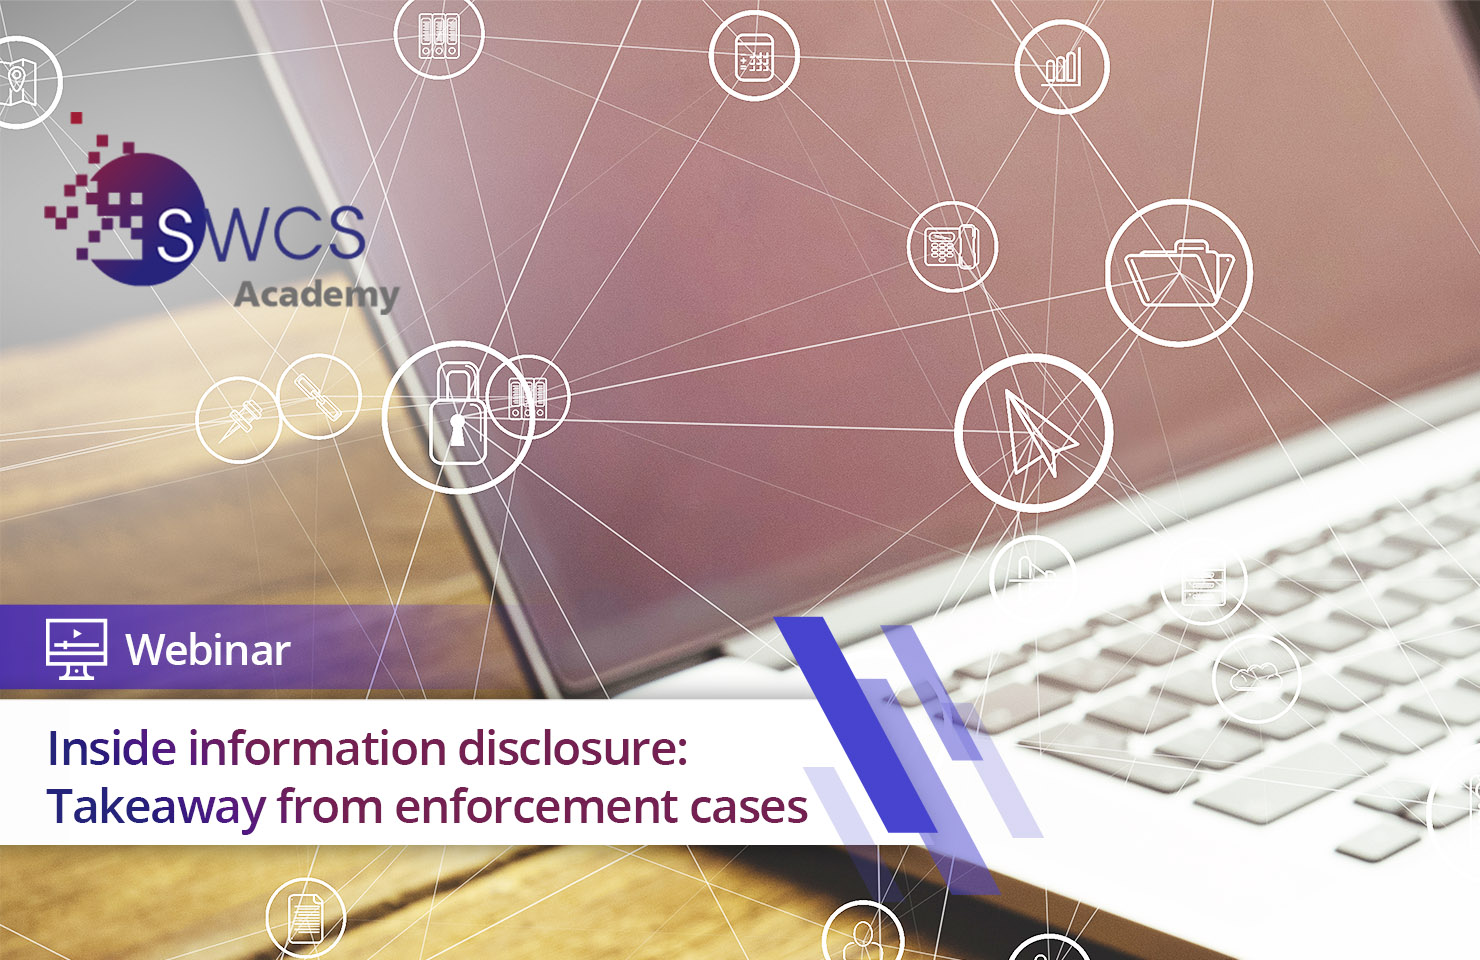 Inside information disclosure: Takeaway from enforcement cases